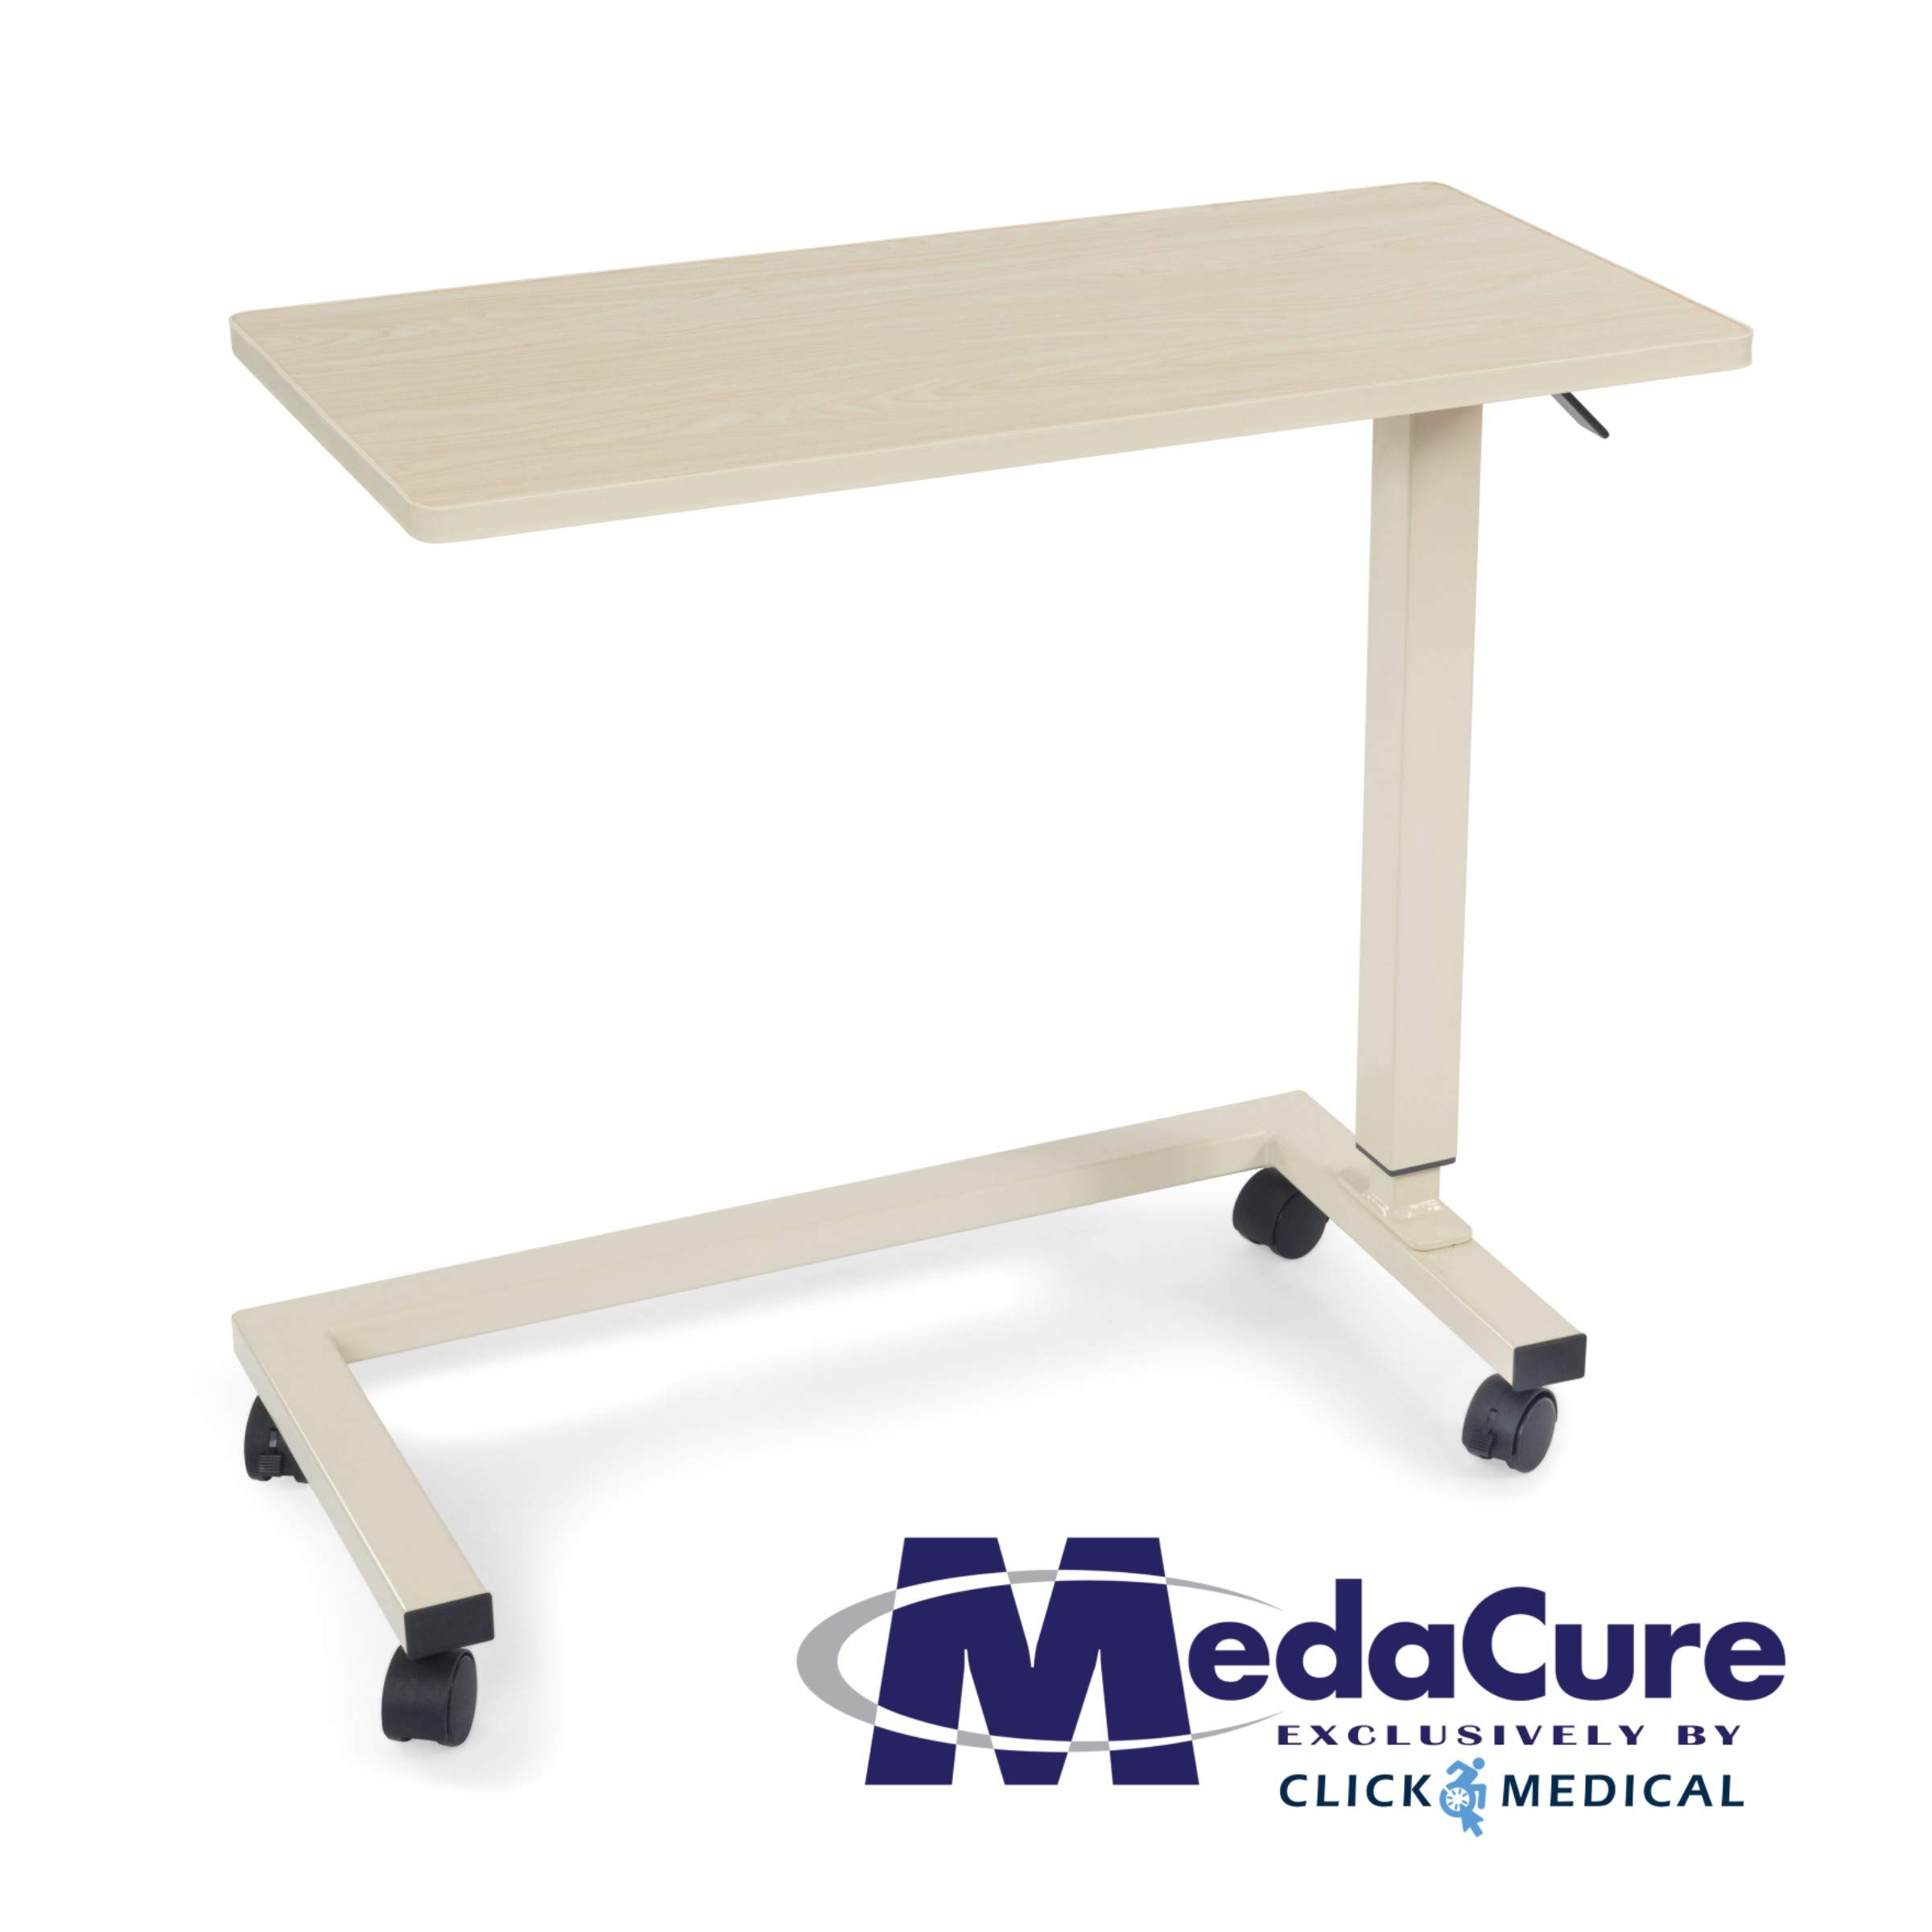 Medical Height Adjustable Overbed Table - Flame Resistant and Anti-Spill Rim - Heavy Duty Steel Frame and Swivel Locking Casters for Home, Hospital,Laptop, and Breakfast– 50lb Weight Capacity. (Oak) by Medacure (Image #7)